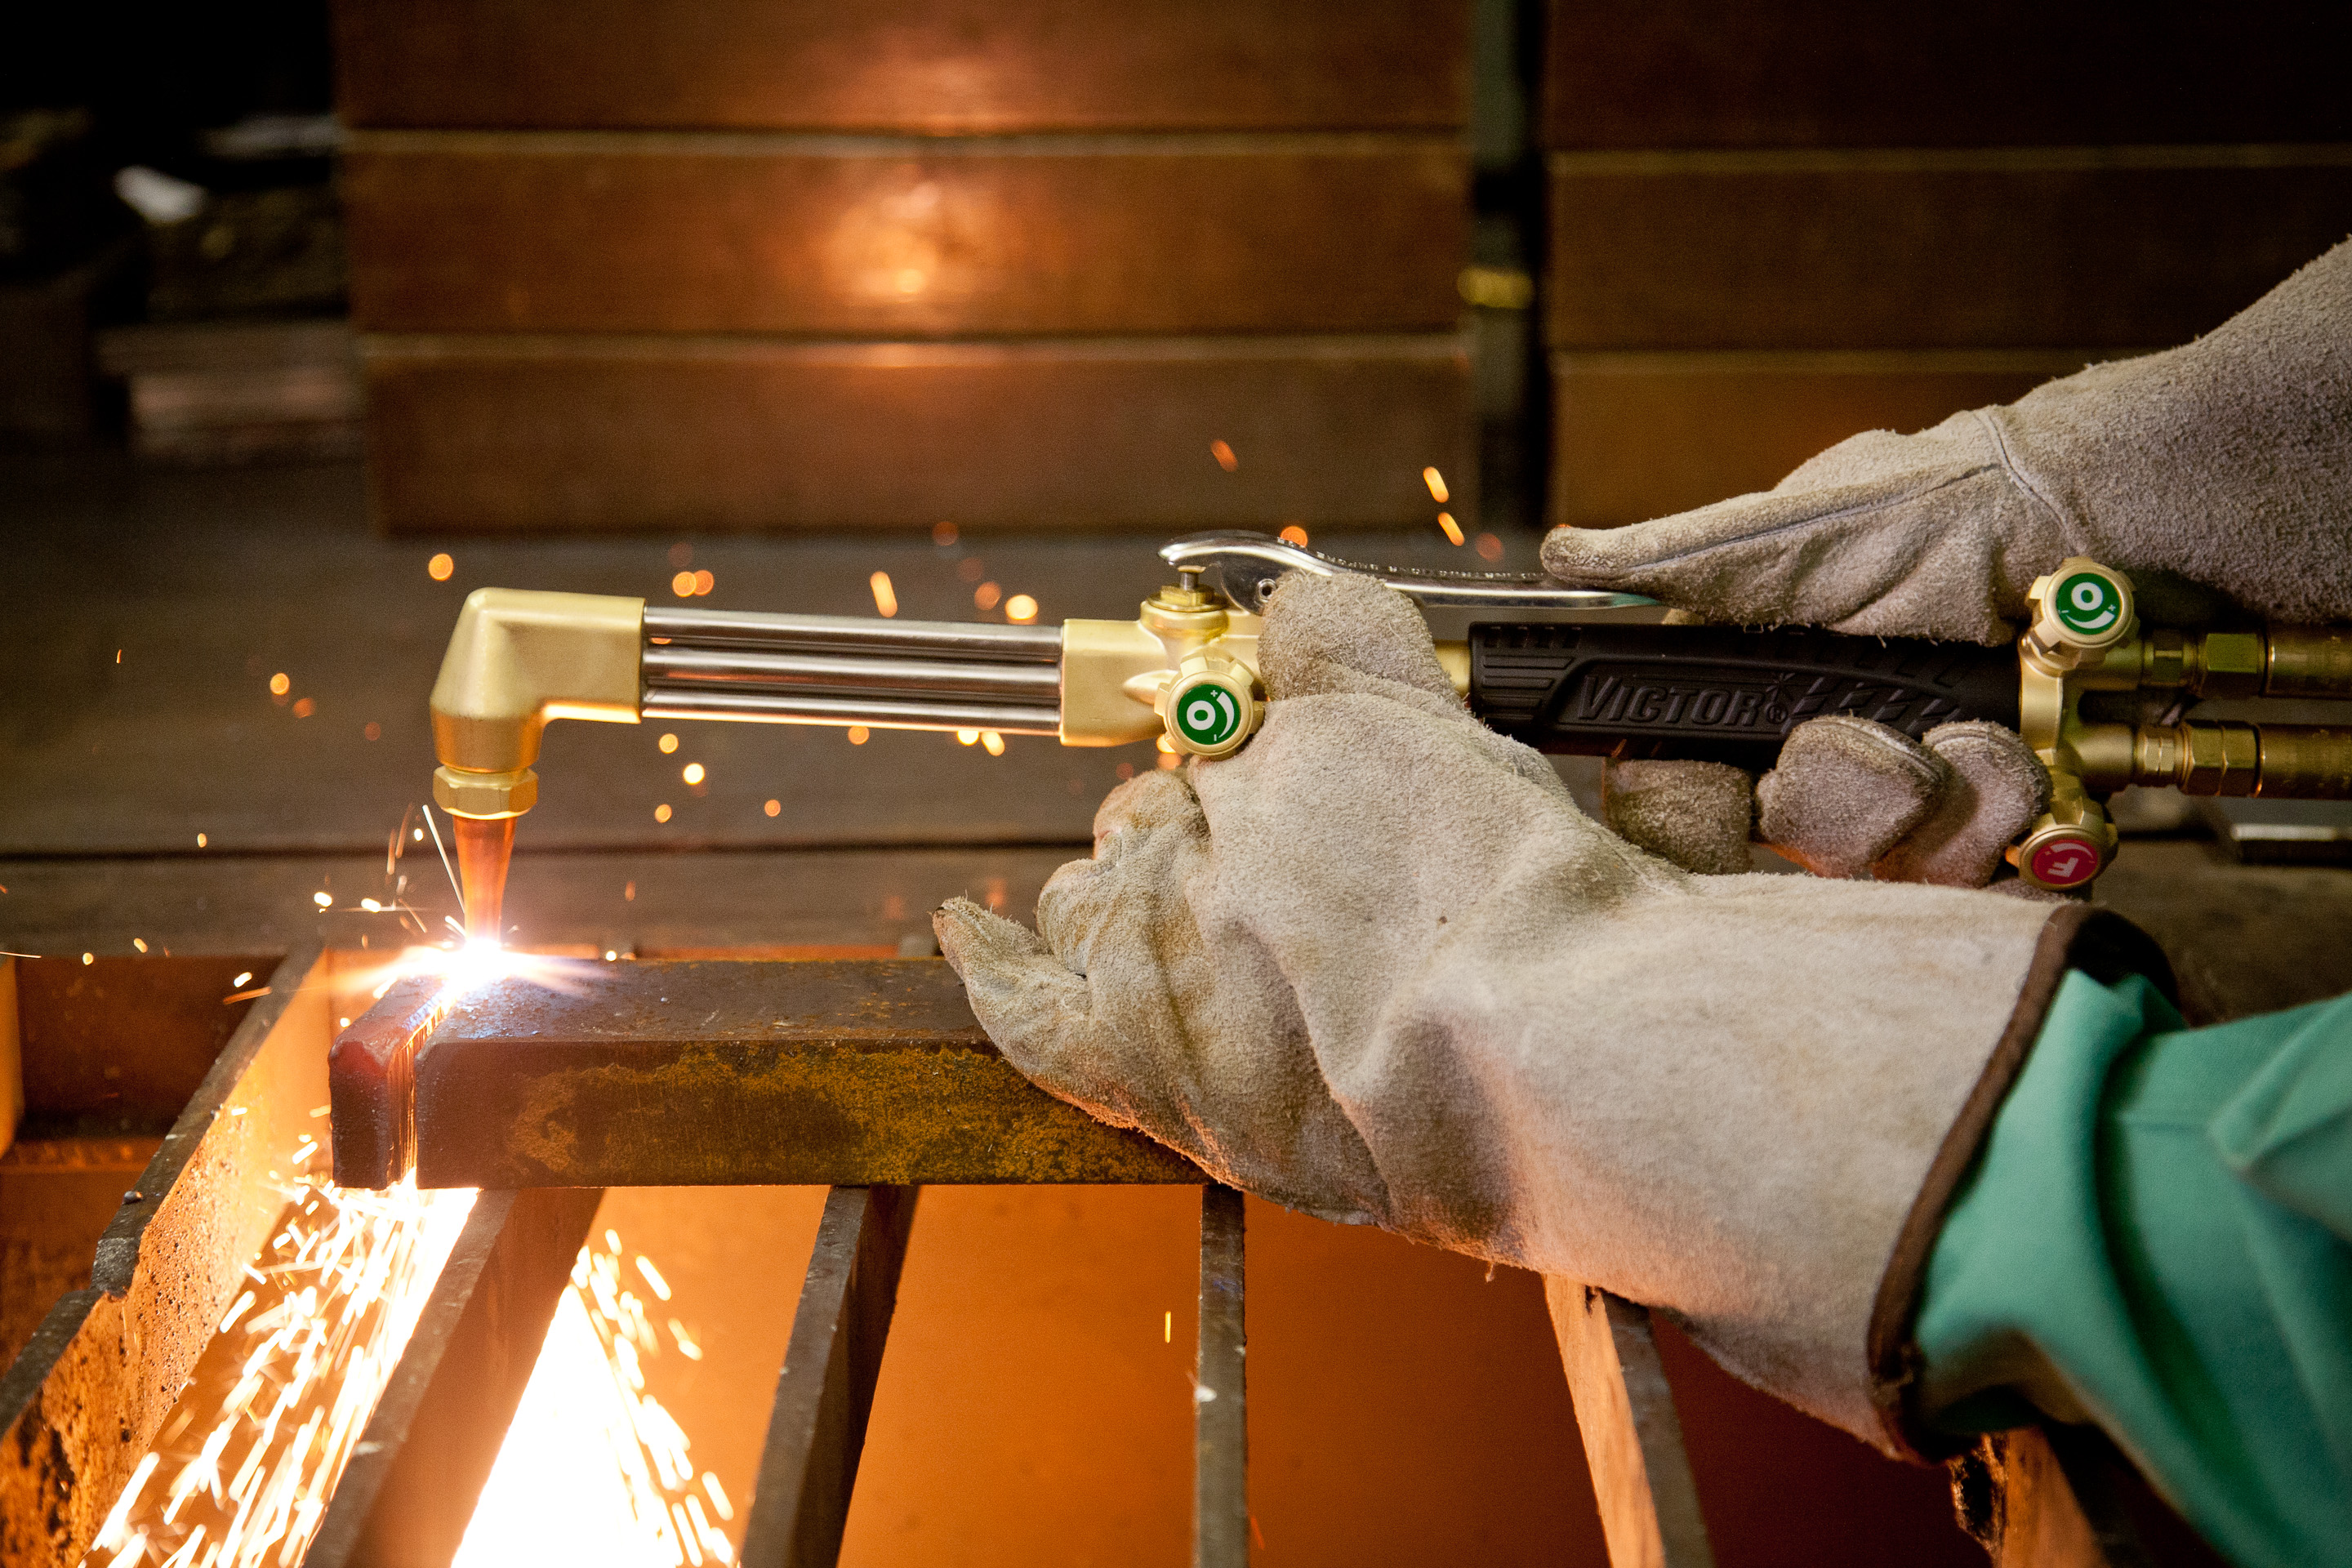 how to cut with oxy acetylene torch